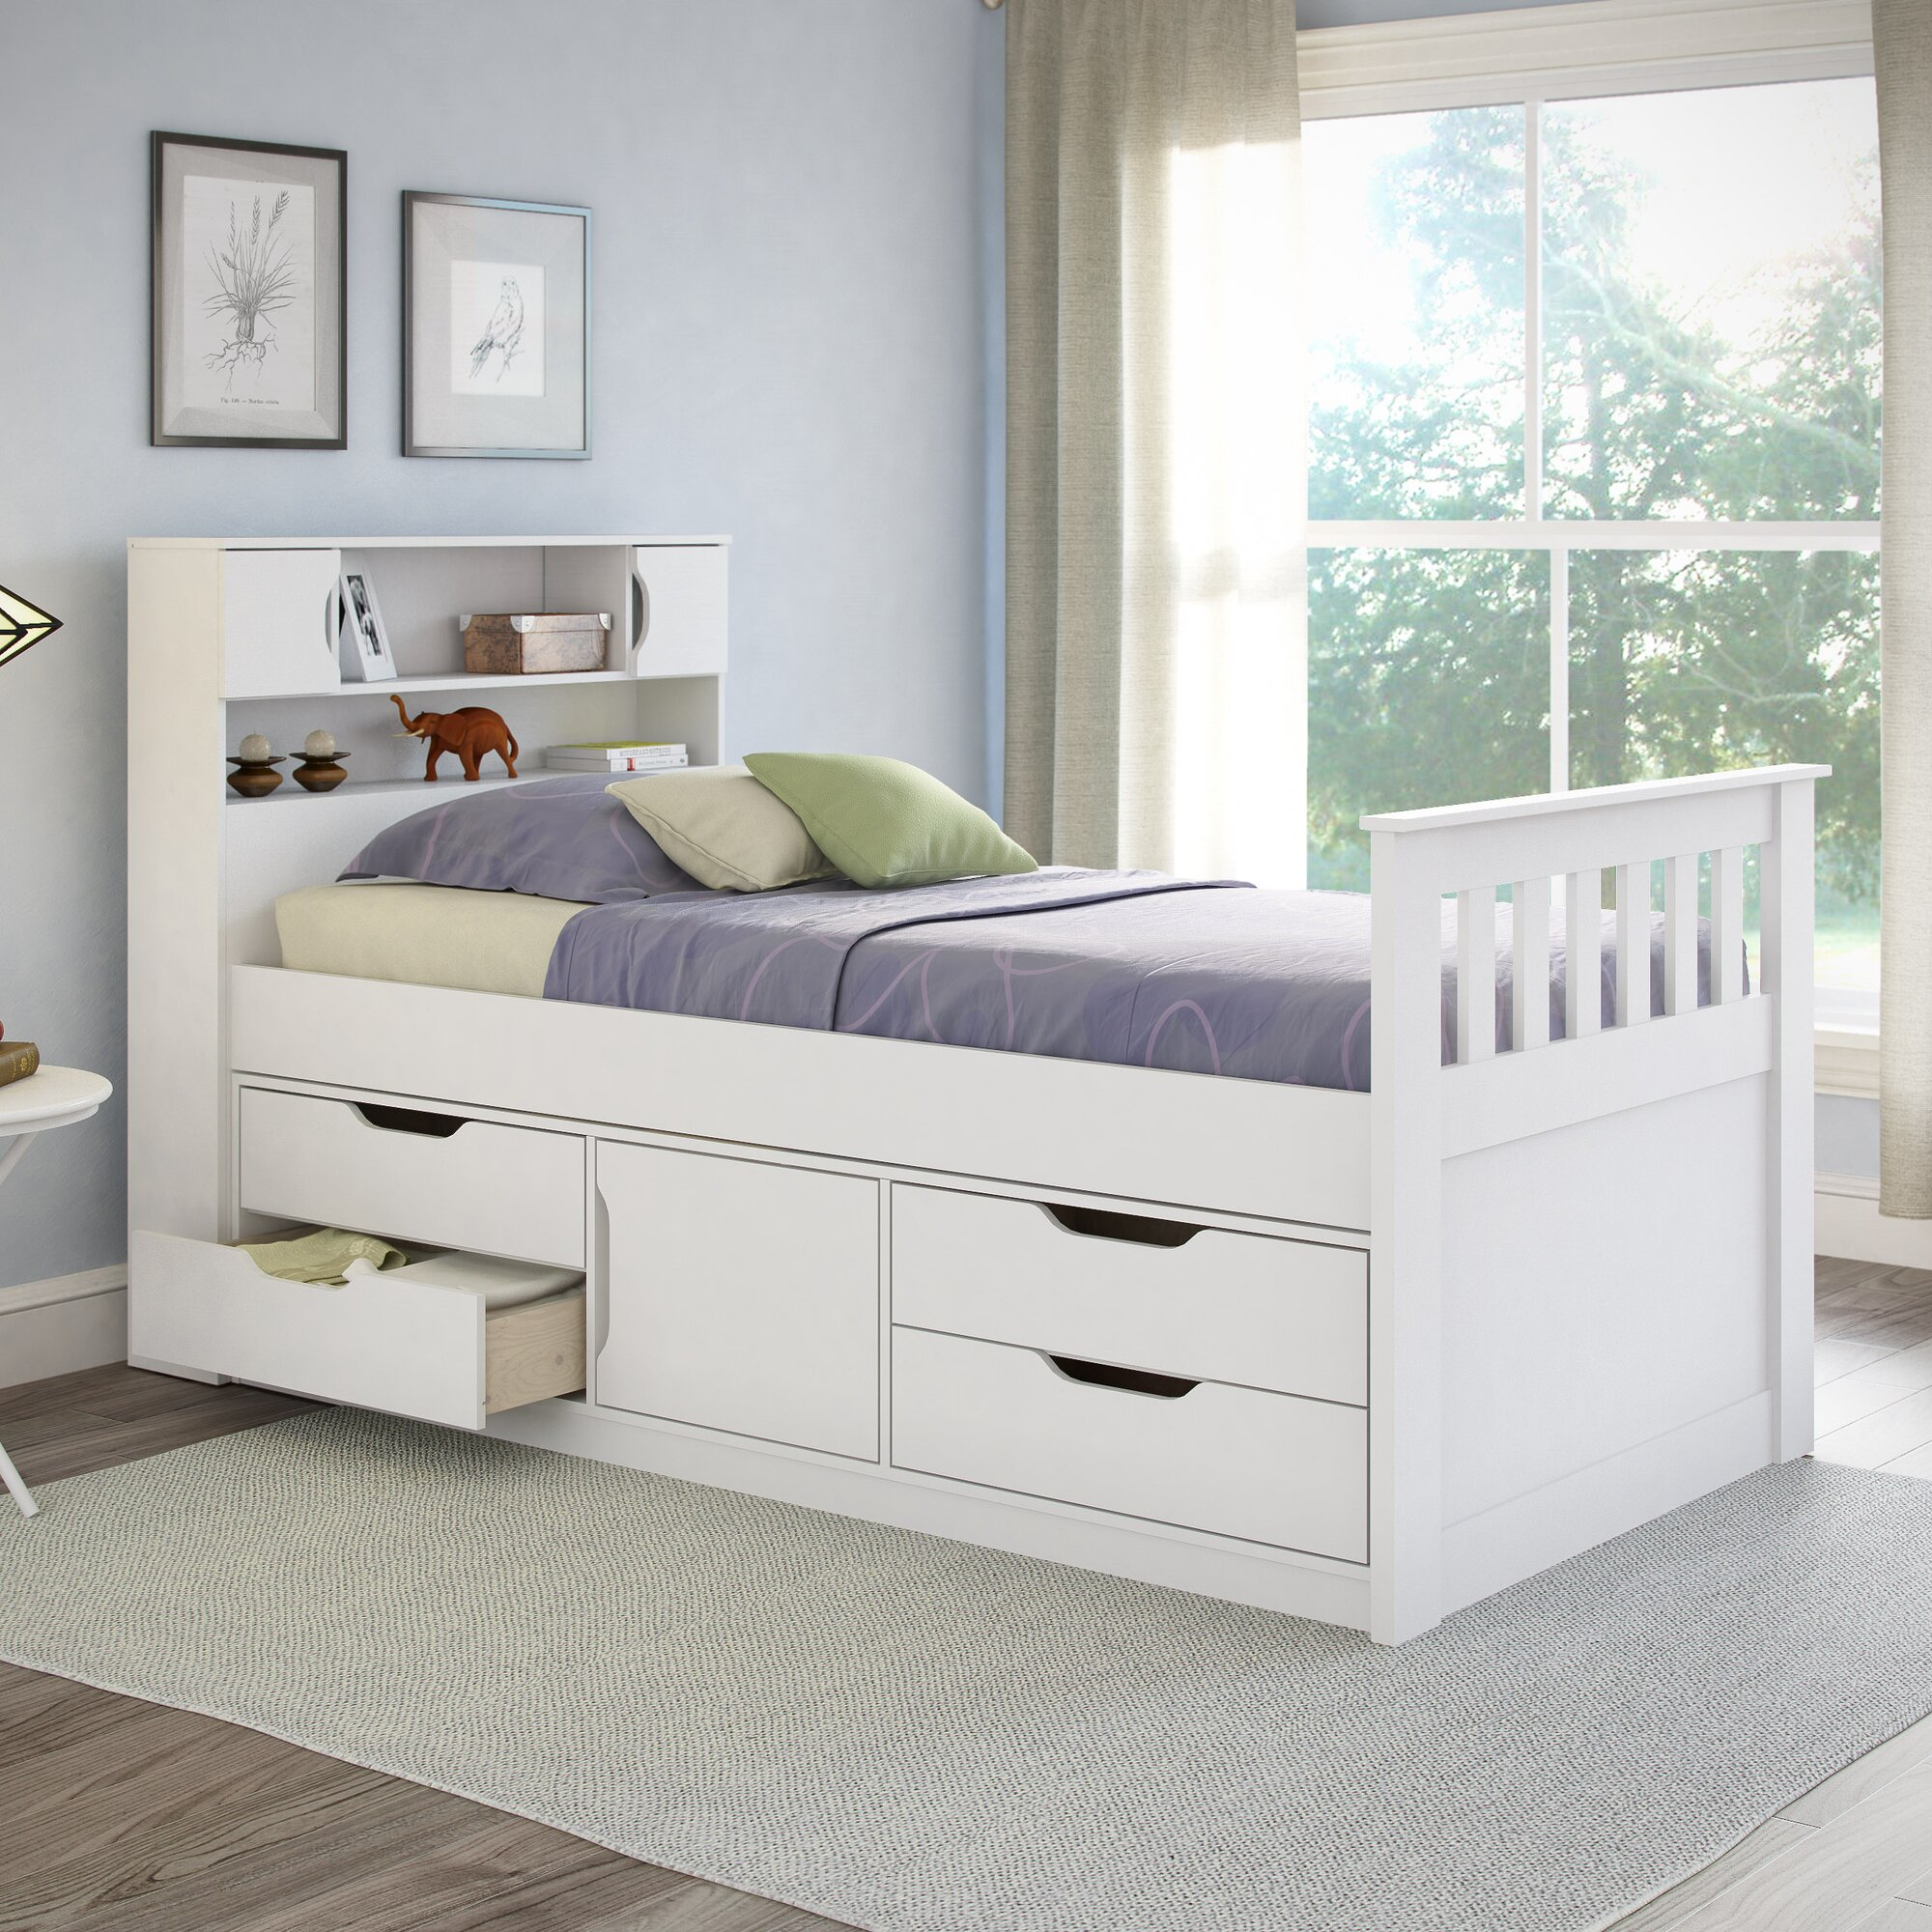 deion twin captain bed with storage - Twin Captains Bed